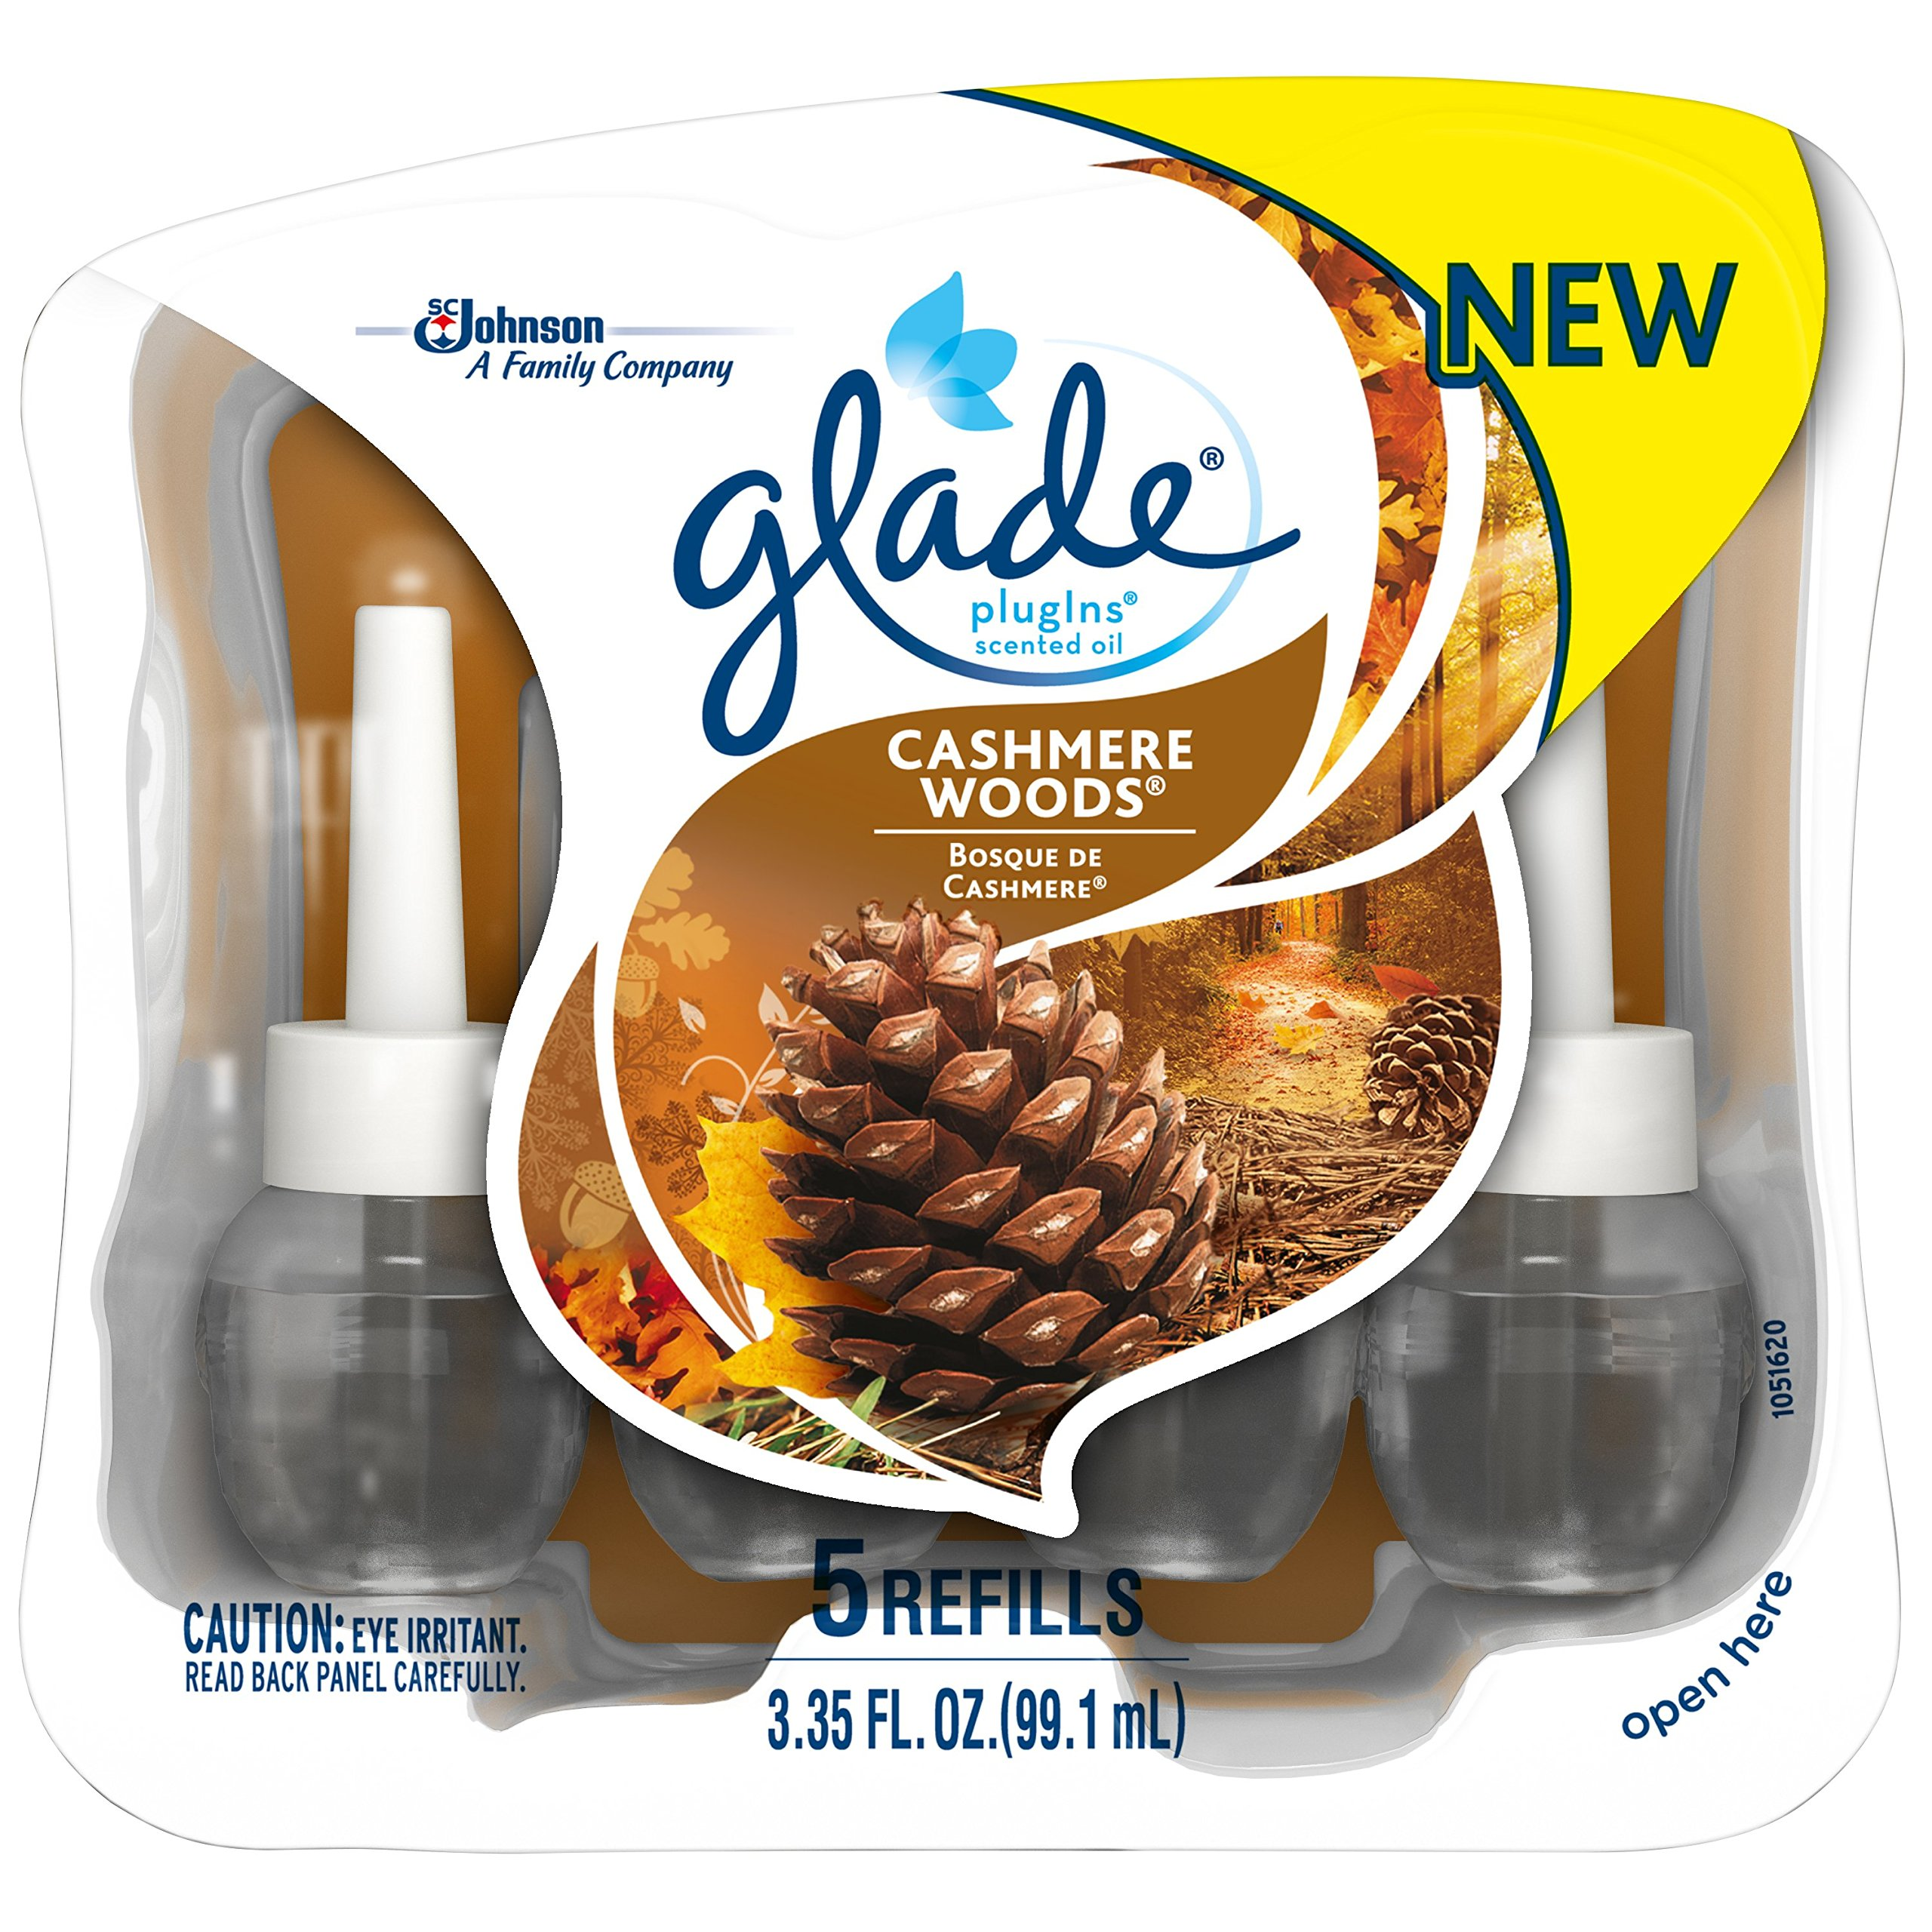 Glade Plugins Scented Oil Air Freshener Refill, Cashmere Woods, 5 Count